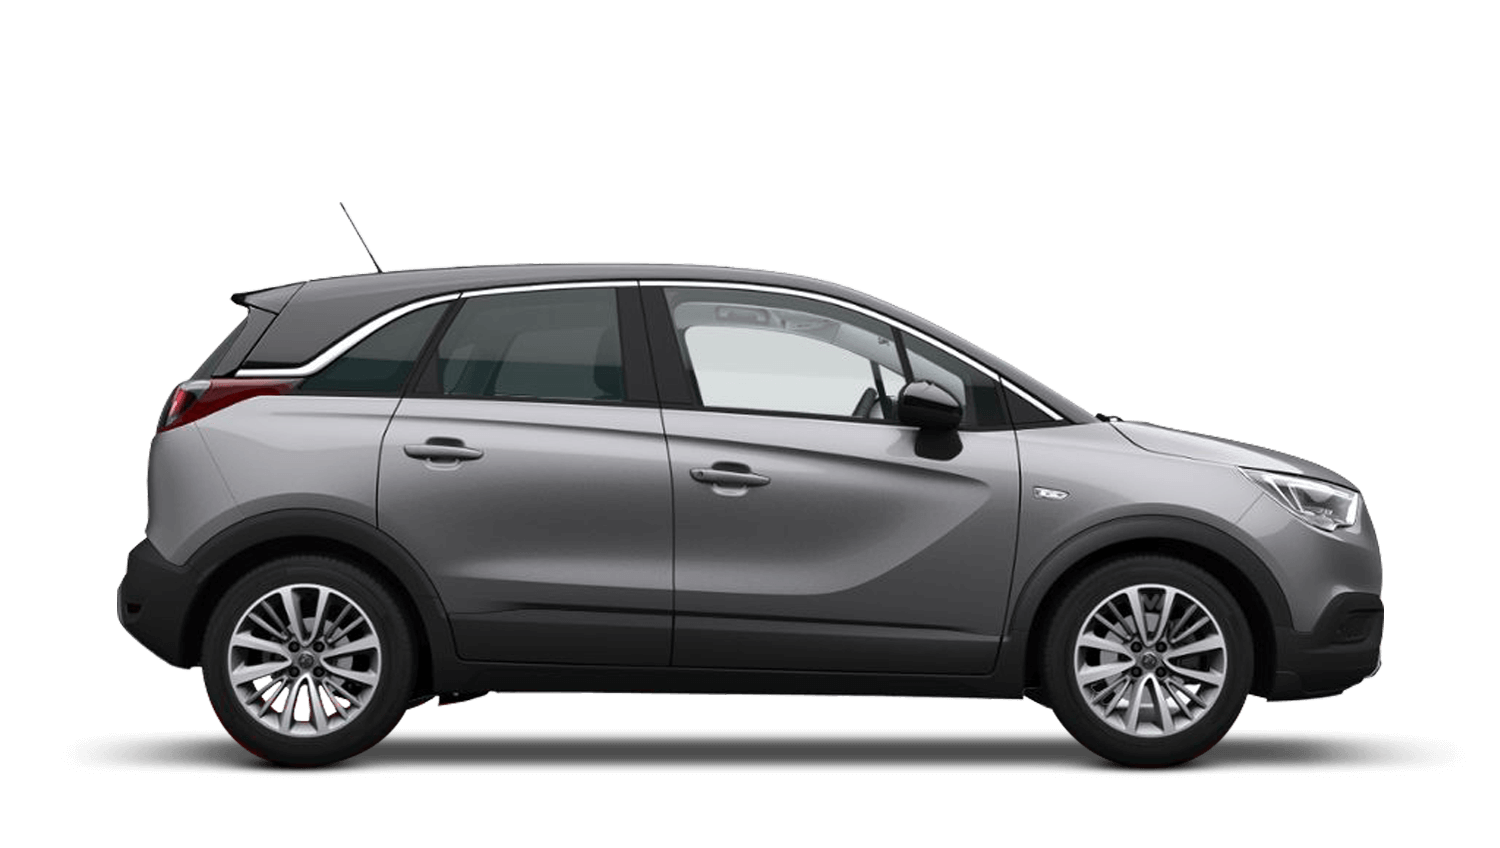 Crossland X Leasing Offers